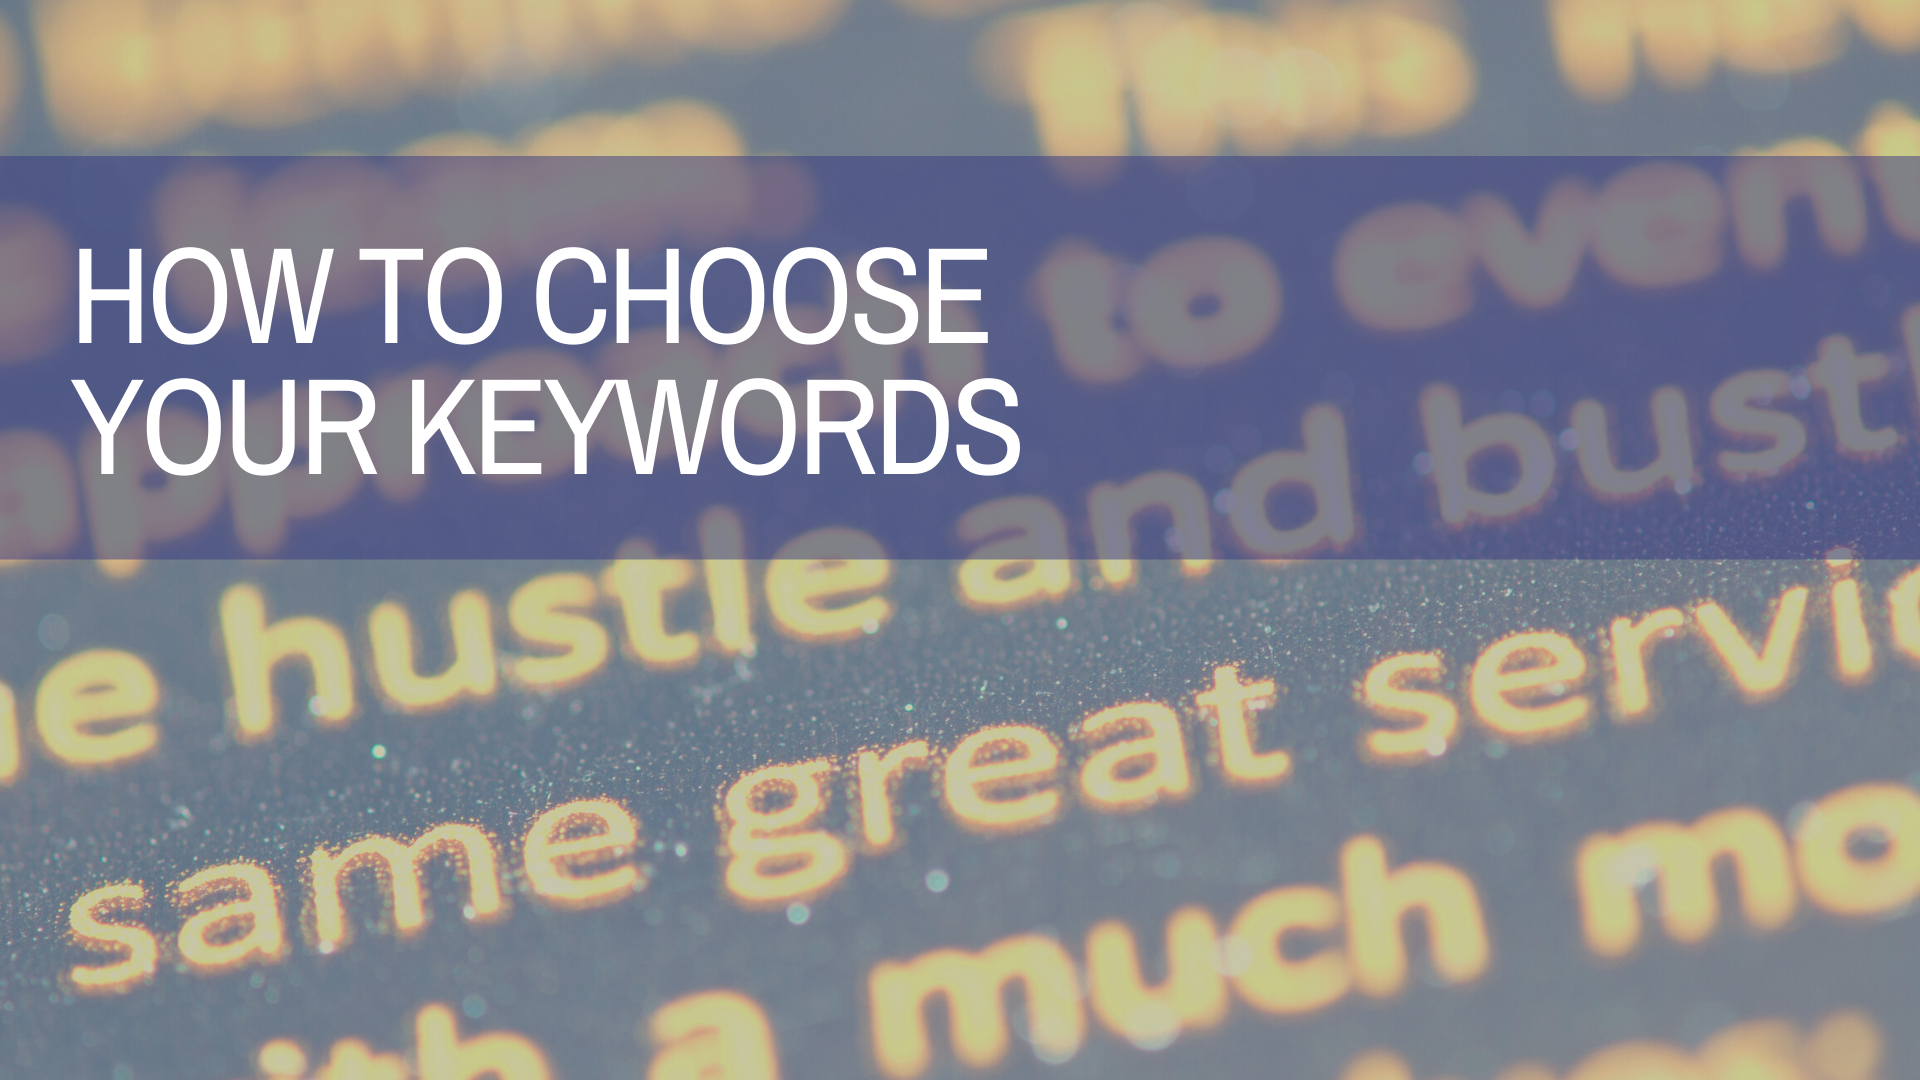 Is Your Keyword Strategy Working for You?